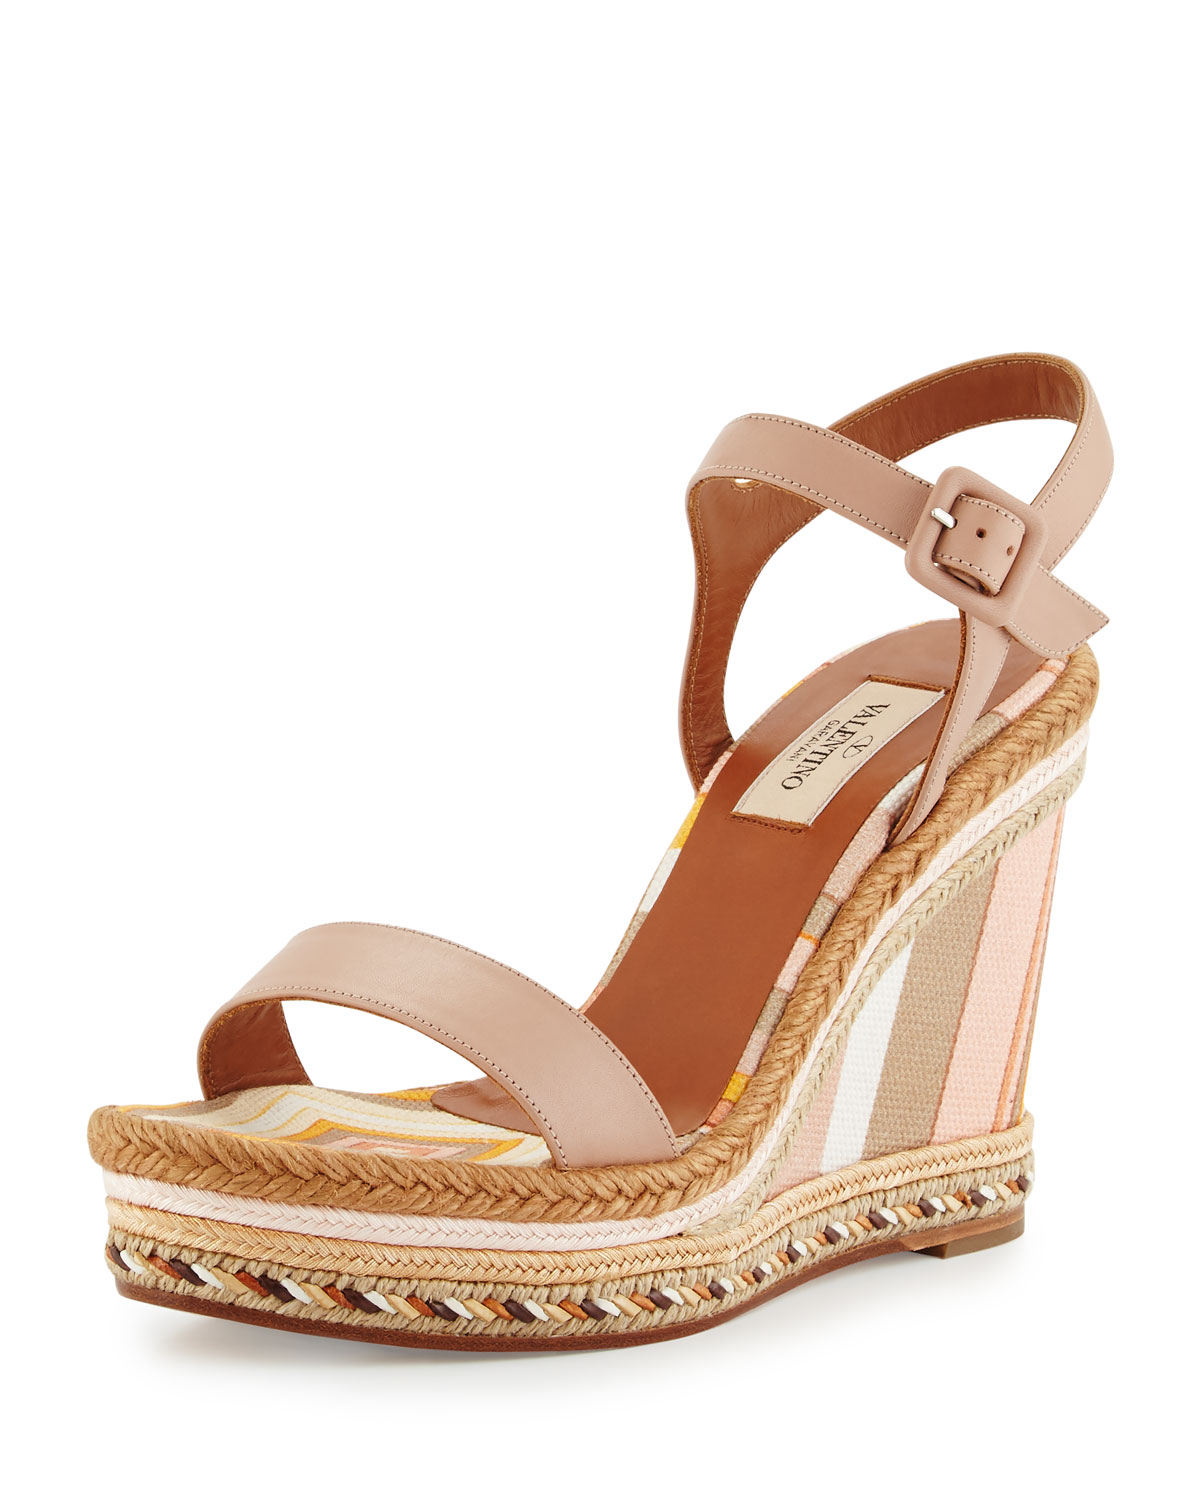 Striped Leather Espadrille Sandal, Skin Sandal/Mandarin